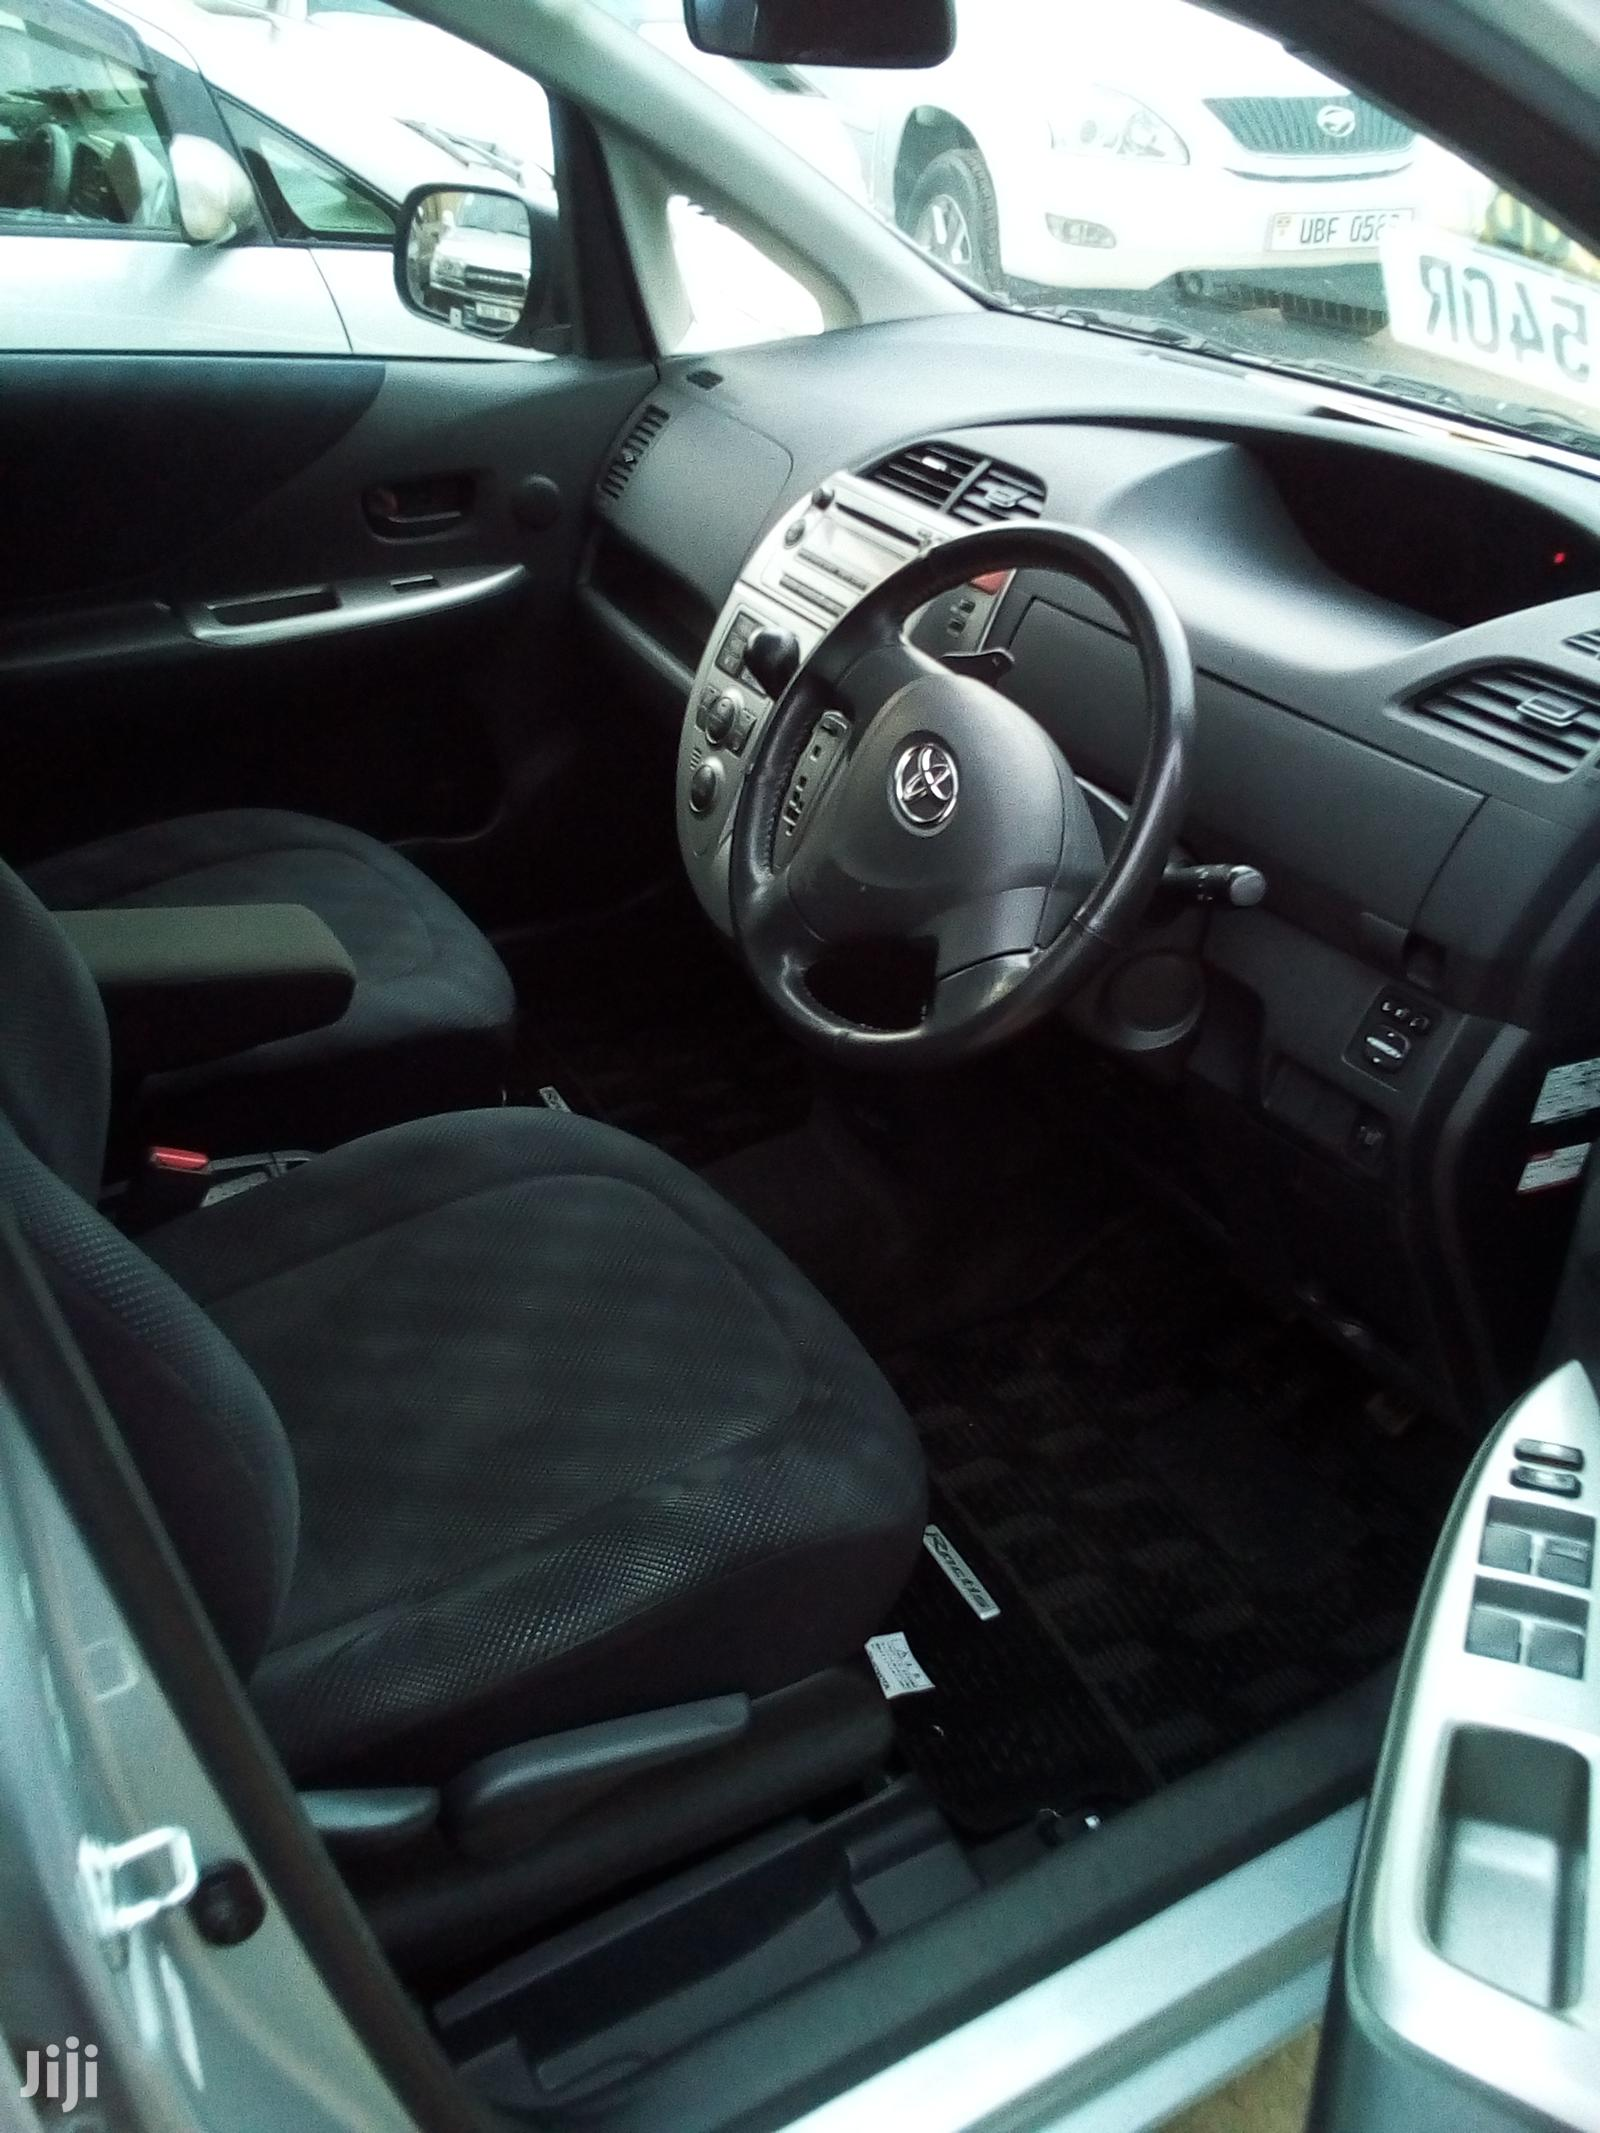 Archive: New Toyota Ractis 2004 Silver